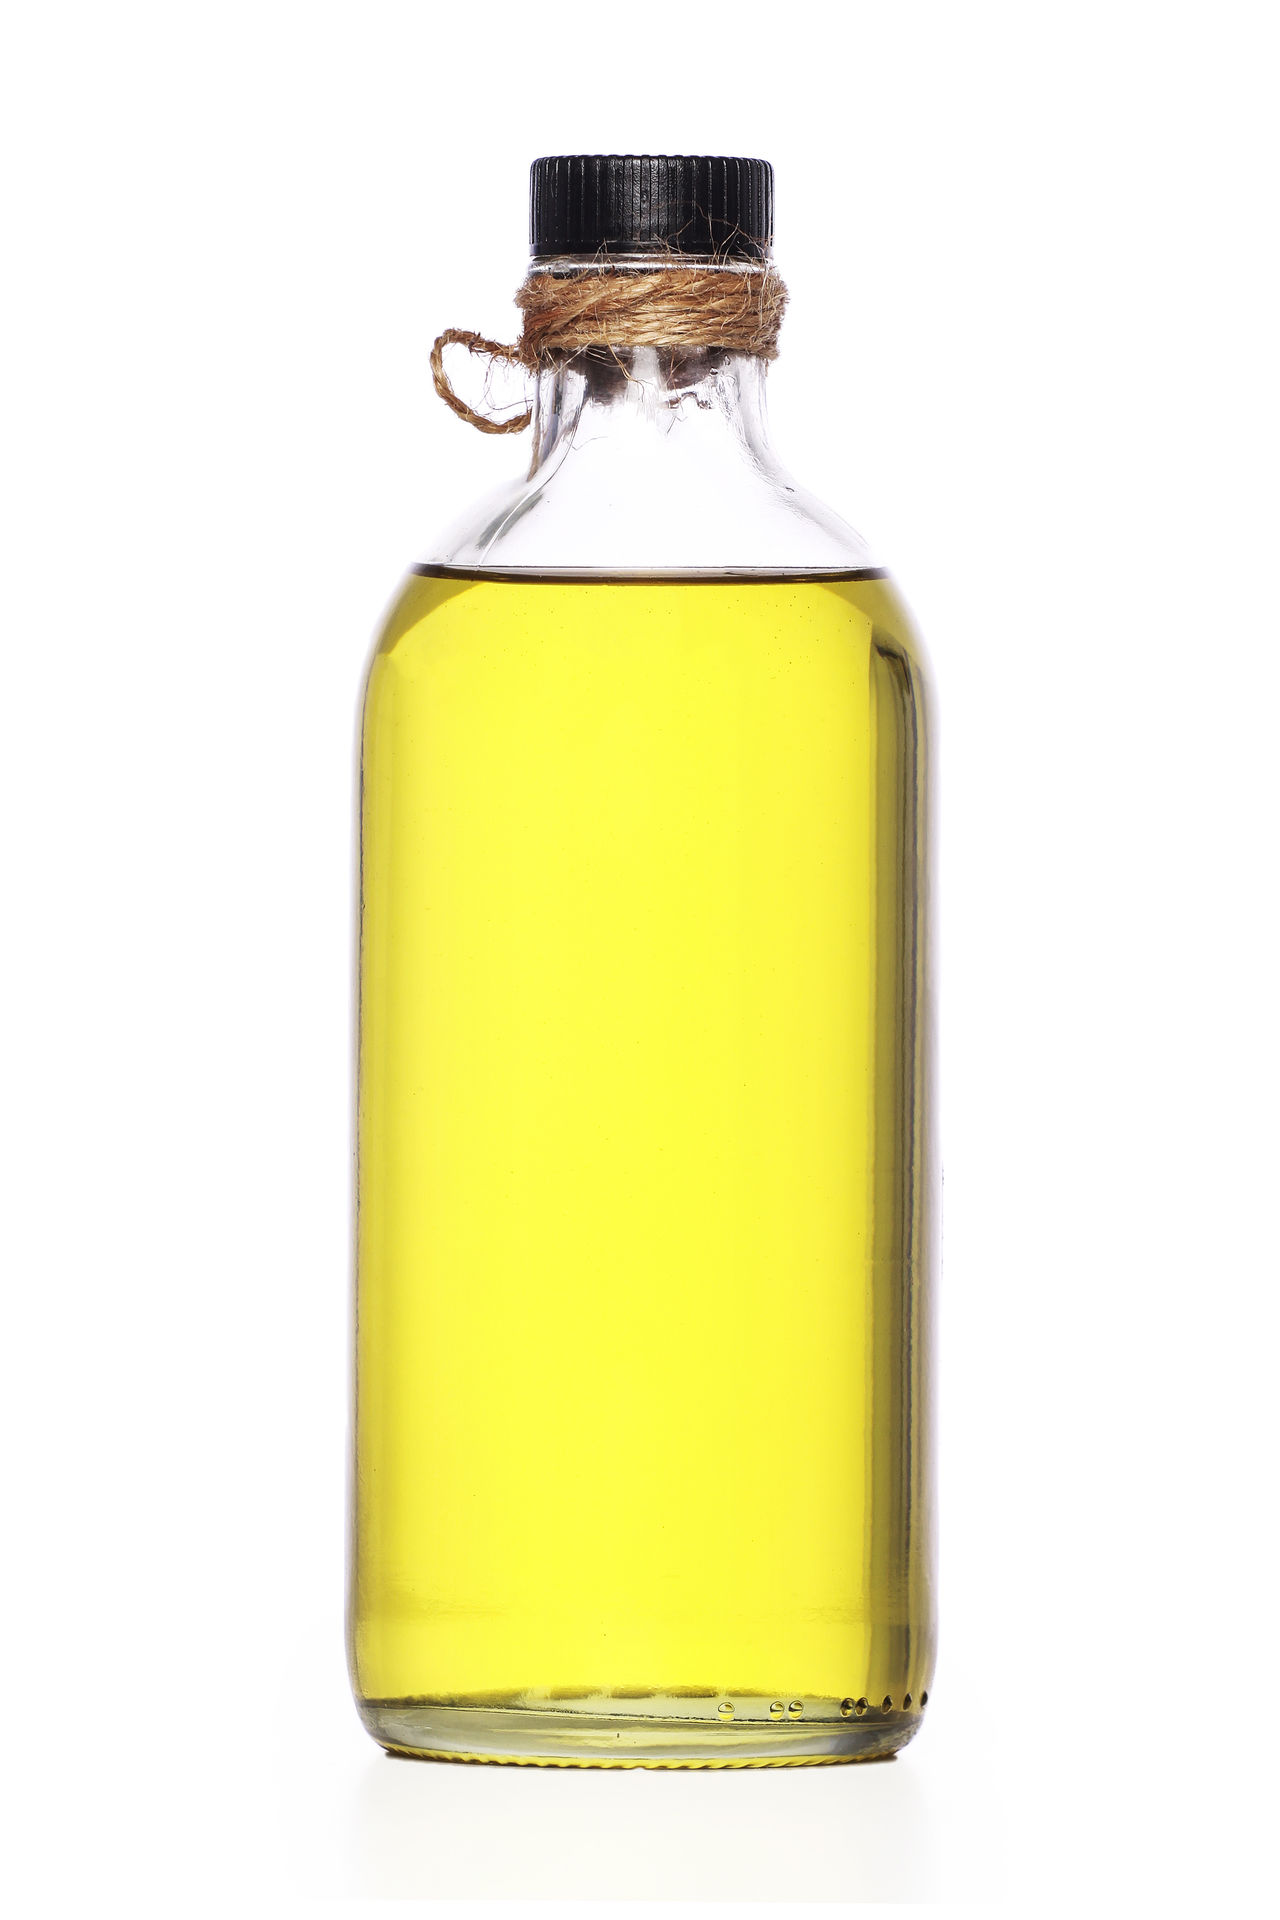 olive oil isolated on white background Bottle Freshness Malaysia Oi Oli Studio Shot Vertical White Background Yellow